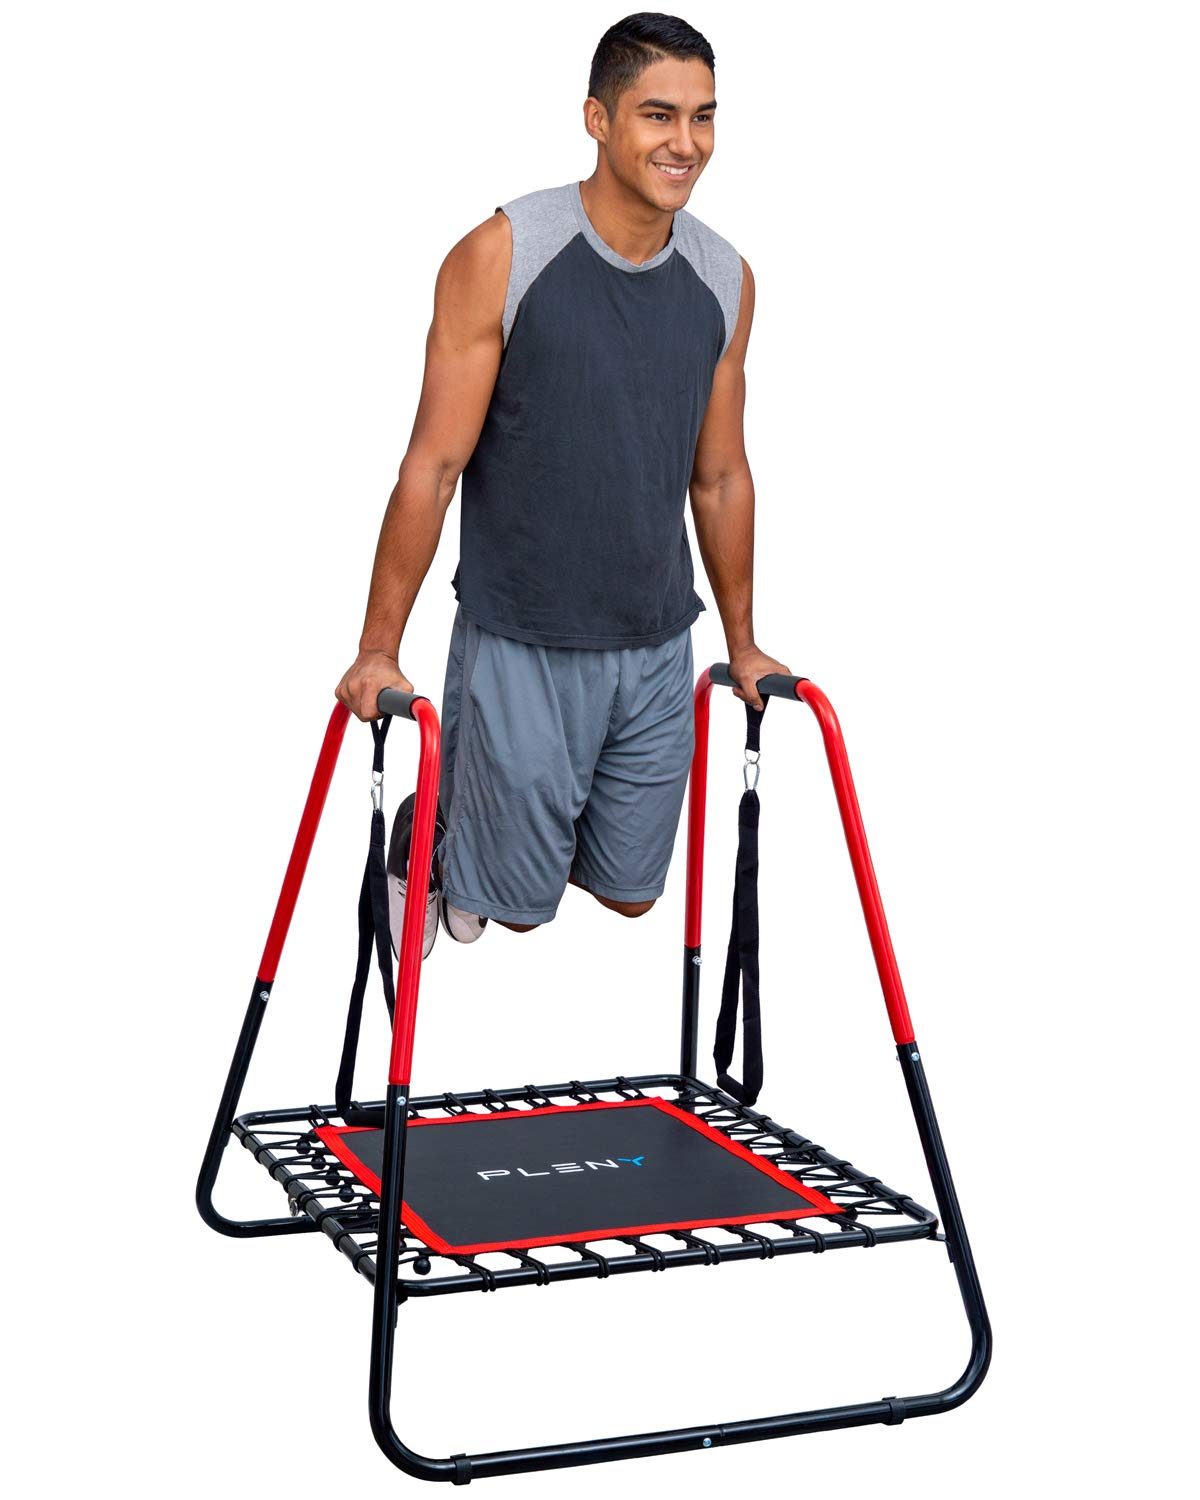 PLENY 2-in-1 Dip Station with 40 inches Trampoline